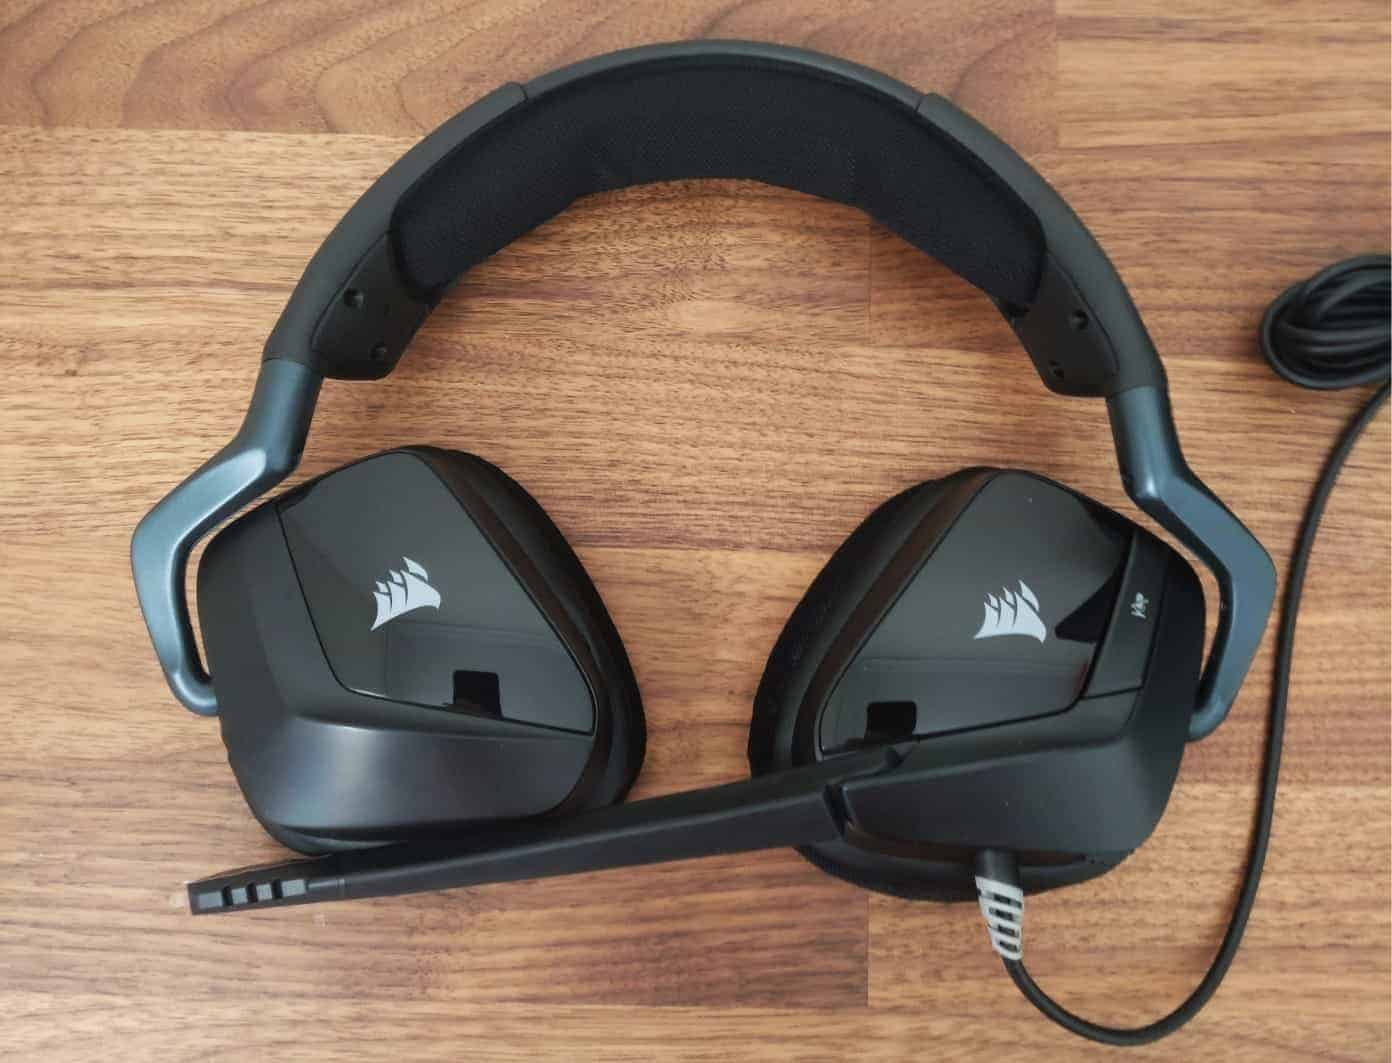 corsair-void-pro-photos-05 Corsair Void Pro Surround Gaming Headset Review